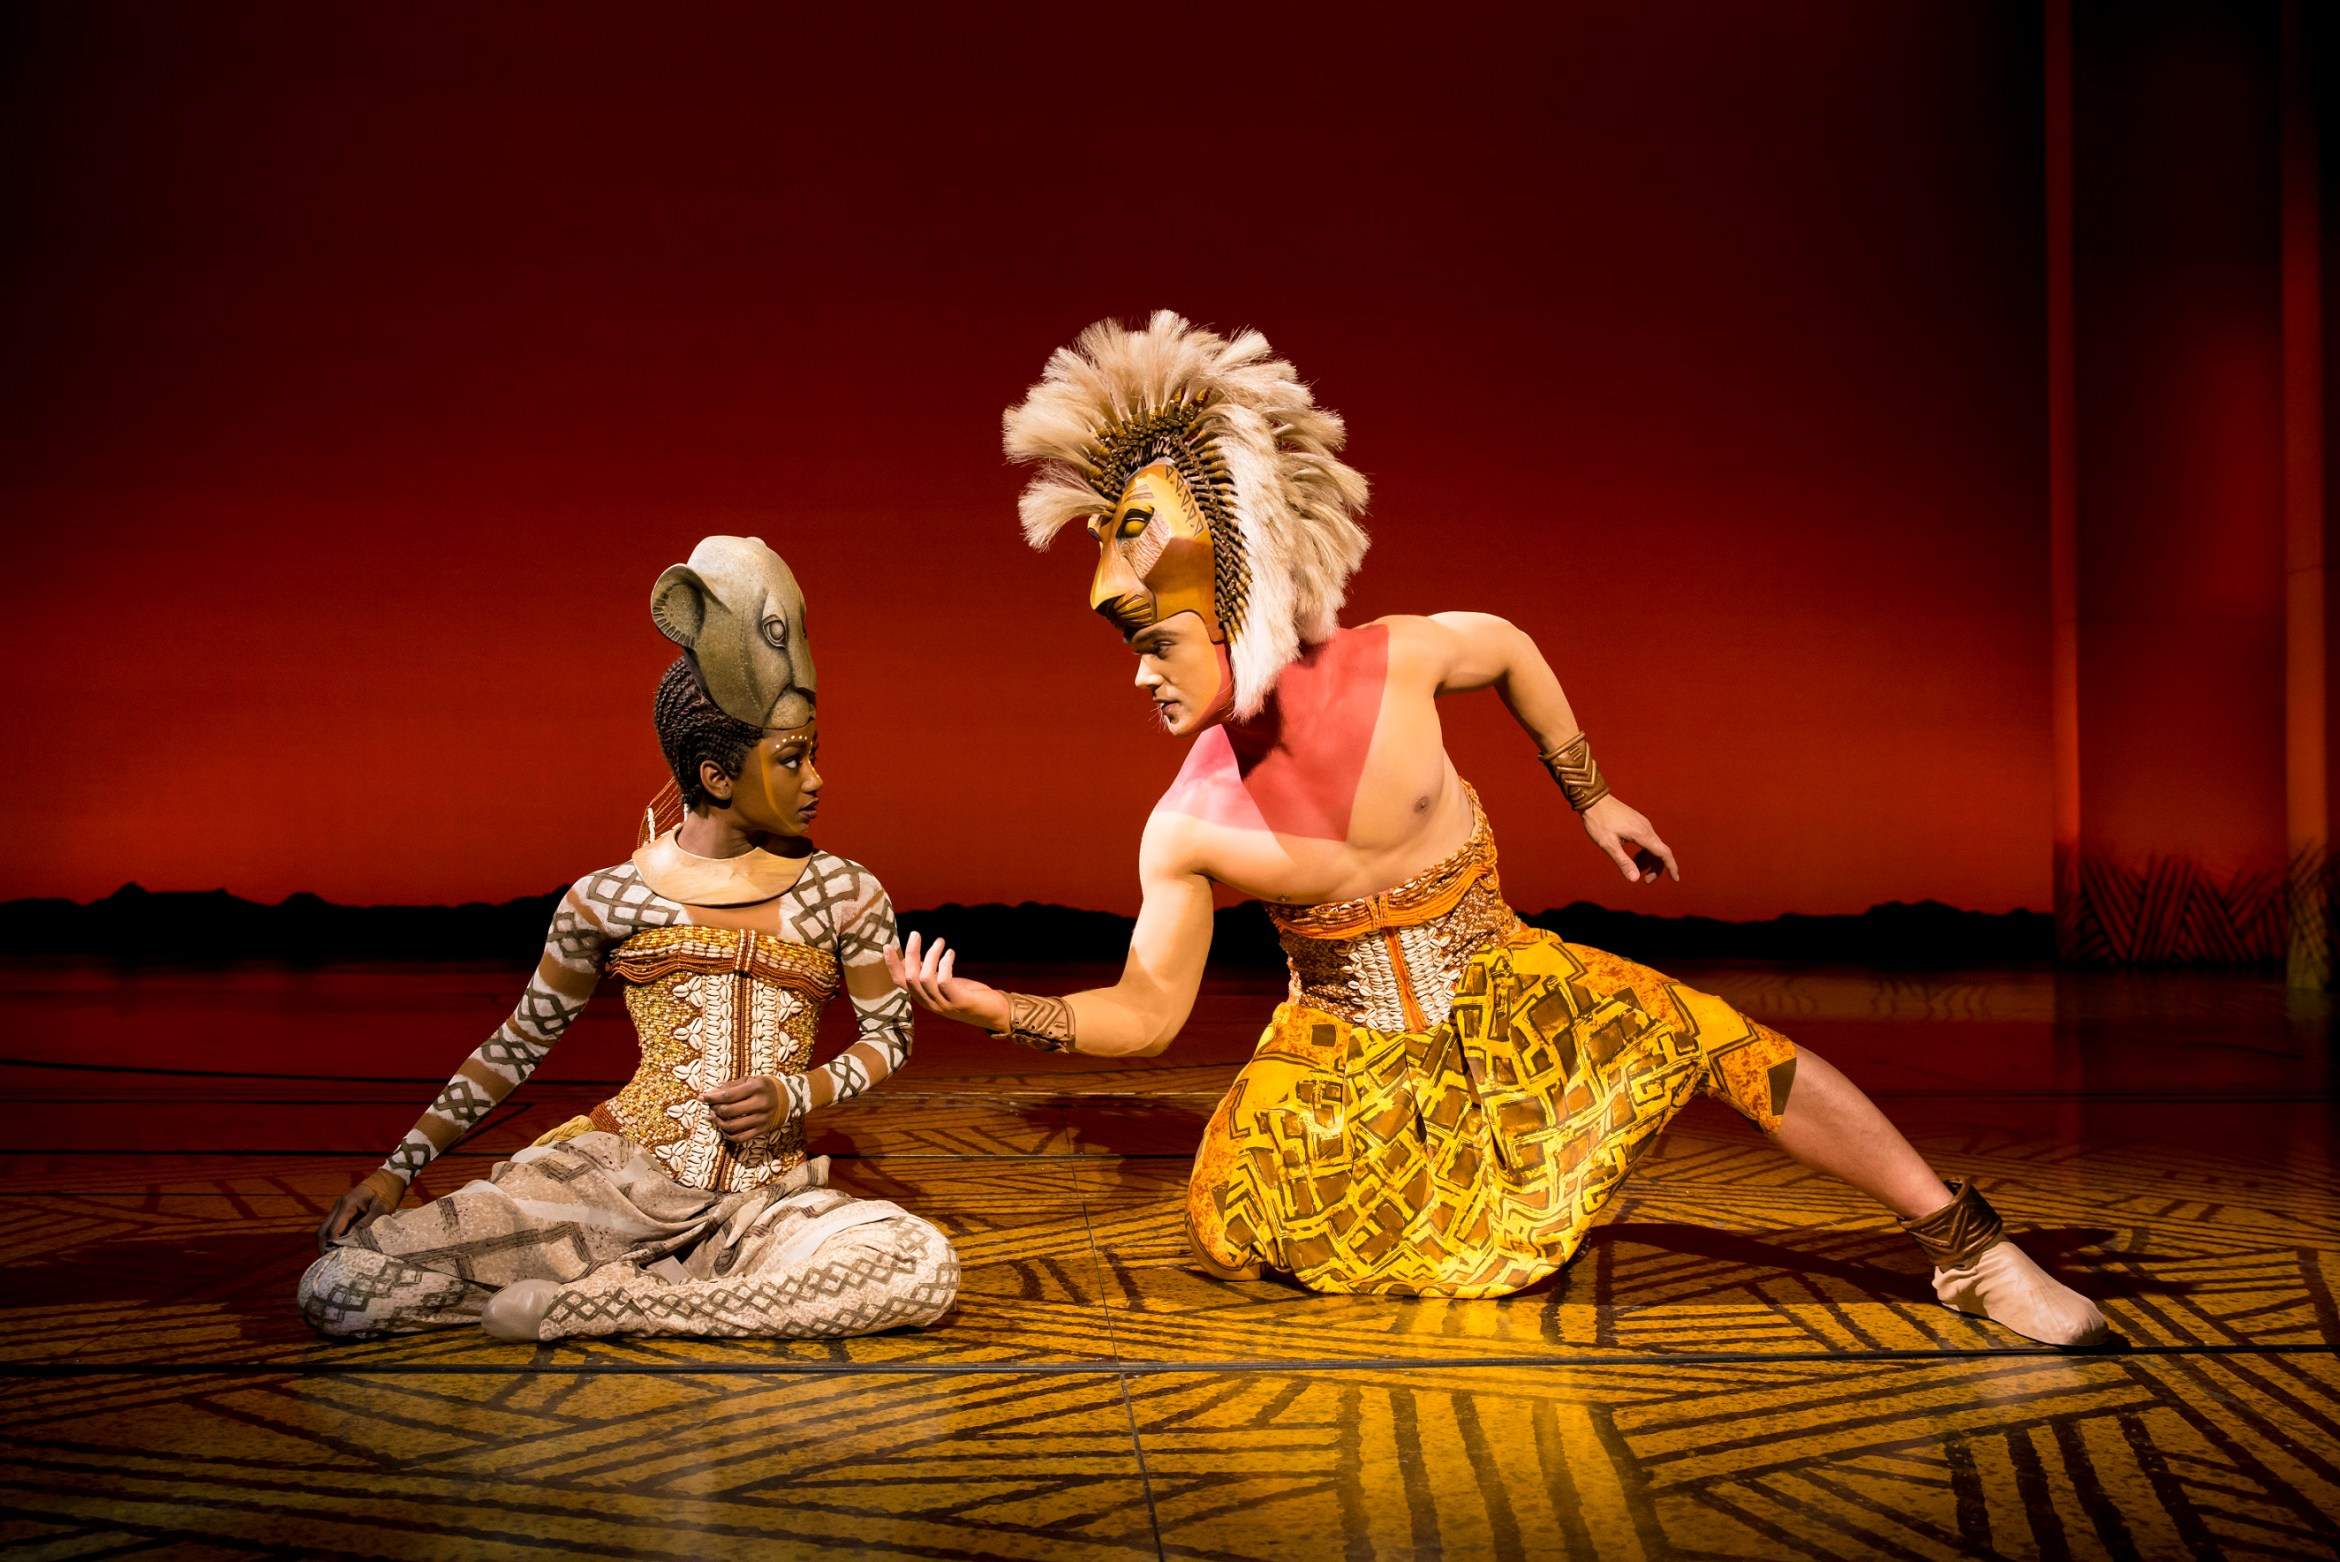 %27Can You You Feel The Love Tonight%27 - Nick Afoa as Simba%2c Janique Charles as Nala 2017 -�Disney.jpg